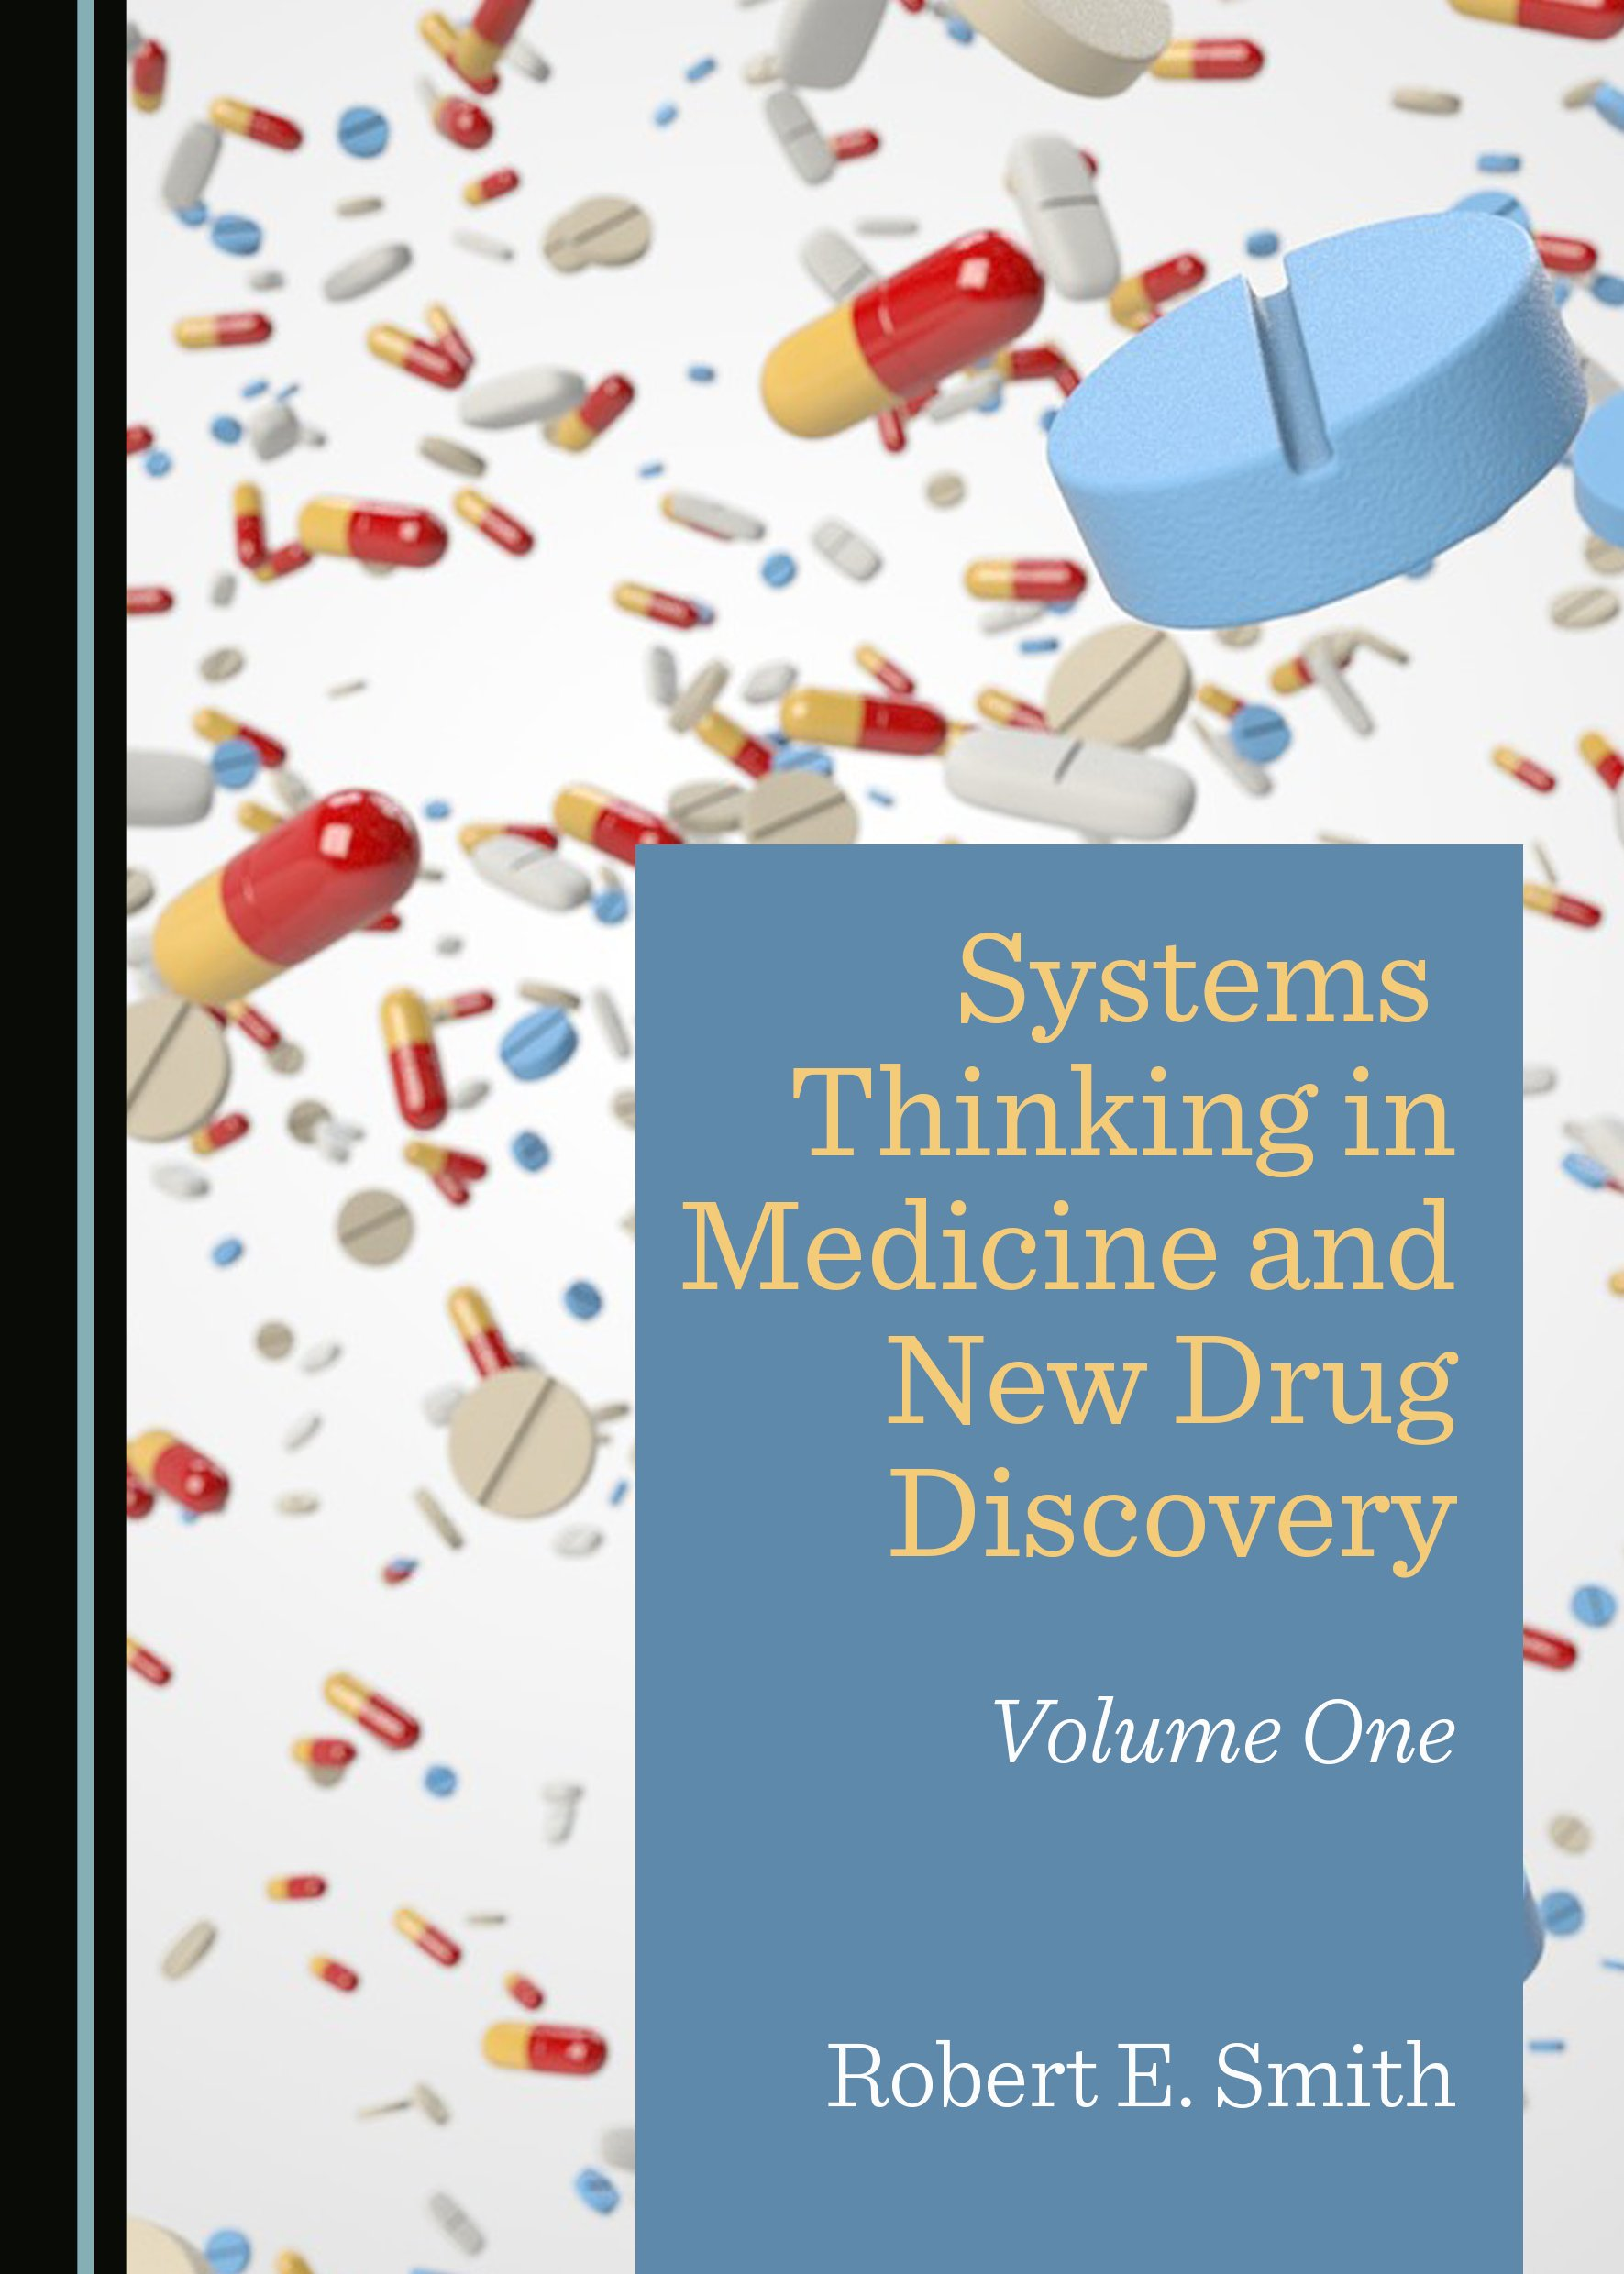 Systems Thinking in Medicine and New Drug Discovery: Volume One